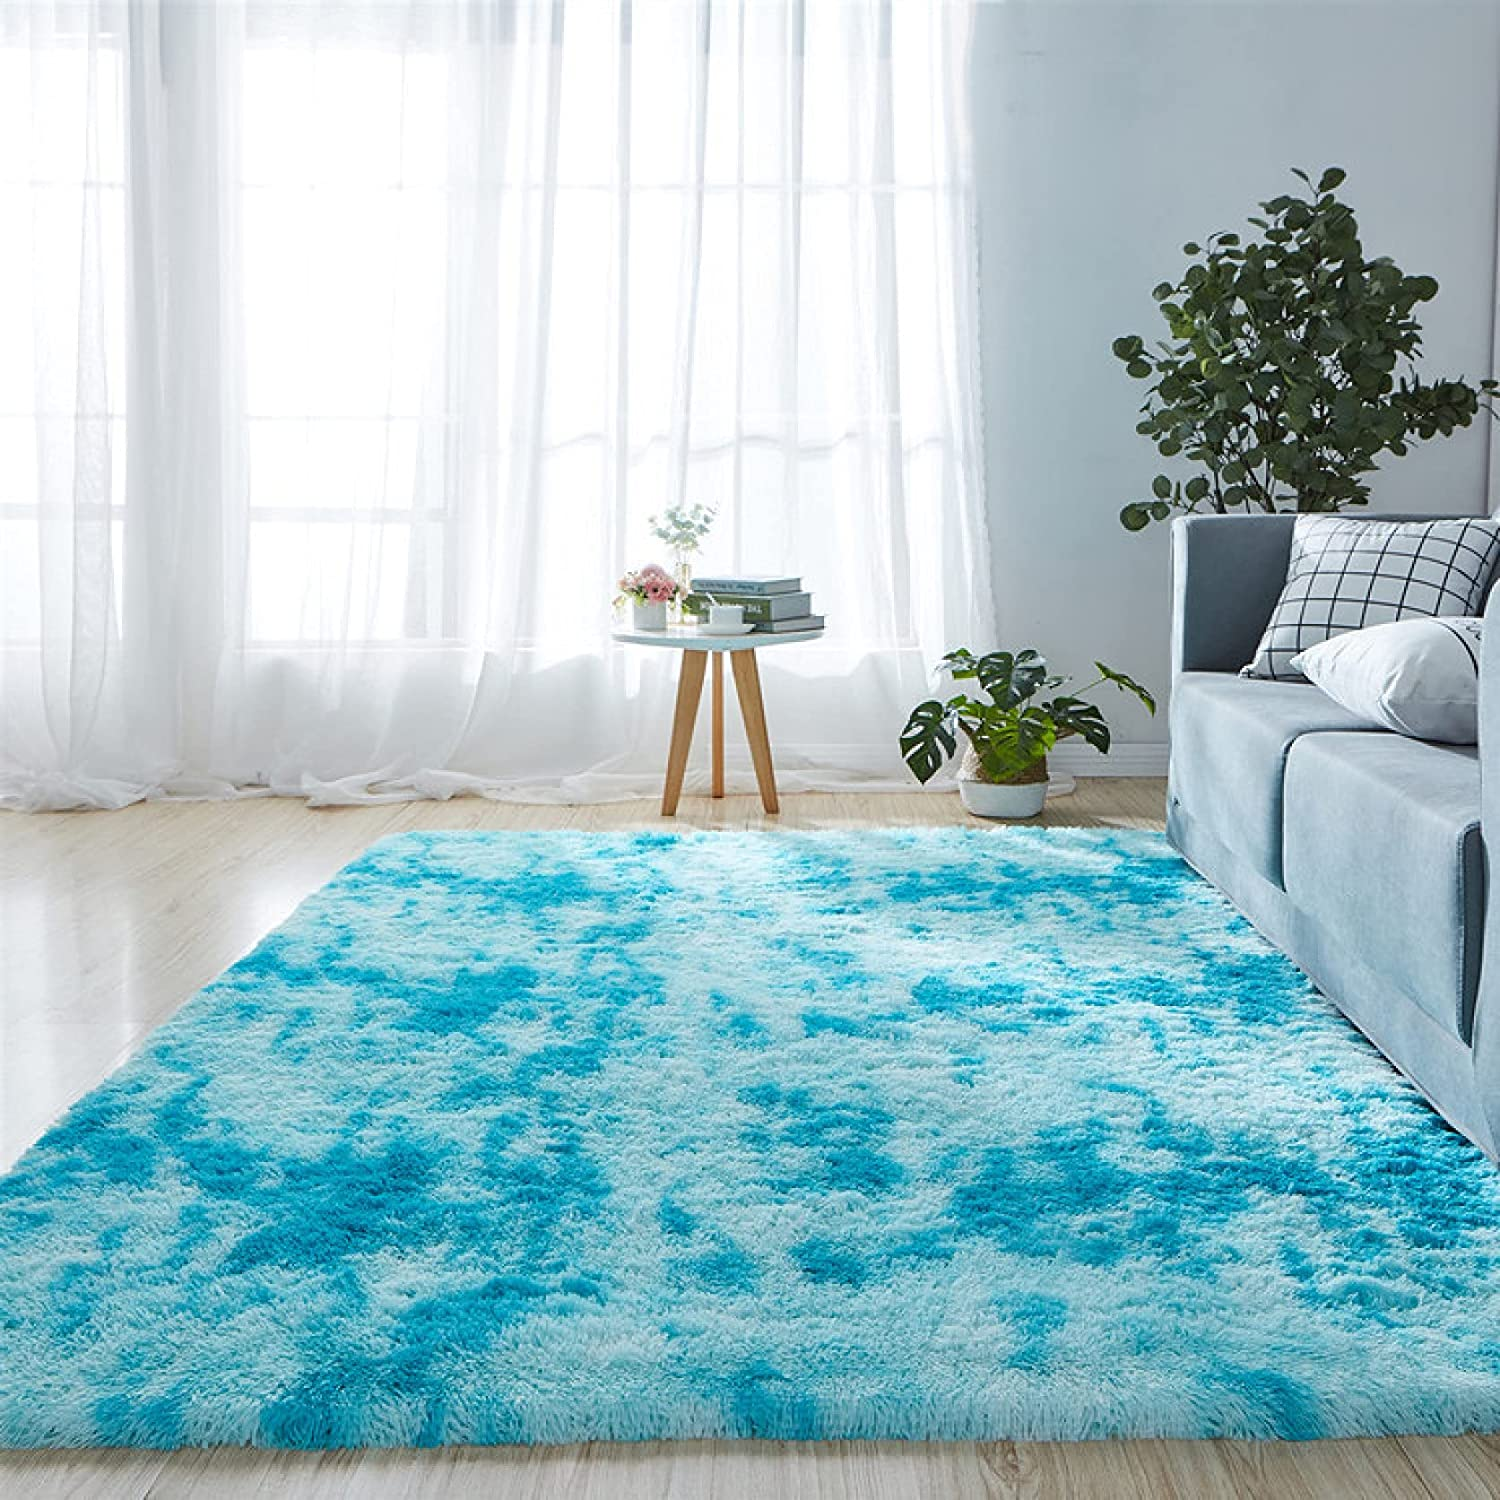 Floor Cheap mail order shopping Modern Indoor Plush Carpets Fuzzy Ca Comfy Decorative Fort Worth Mall Home